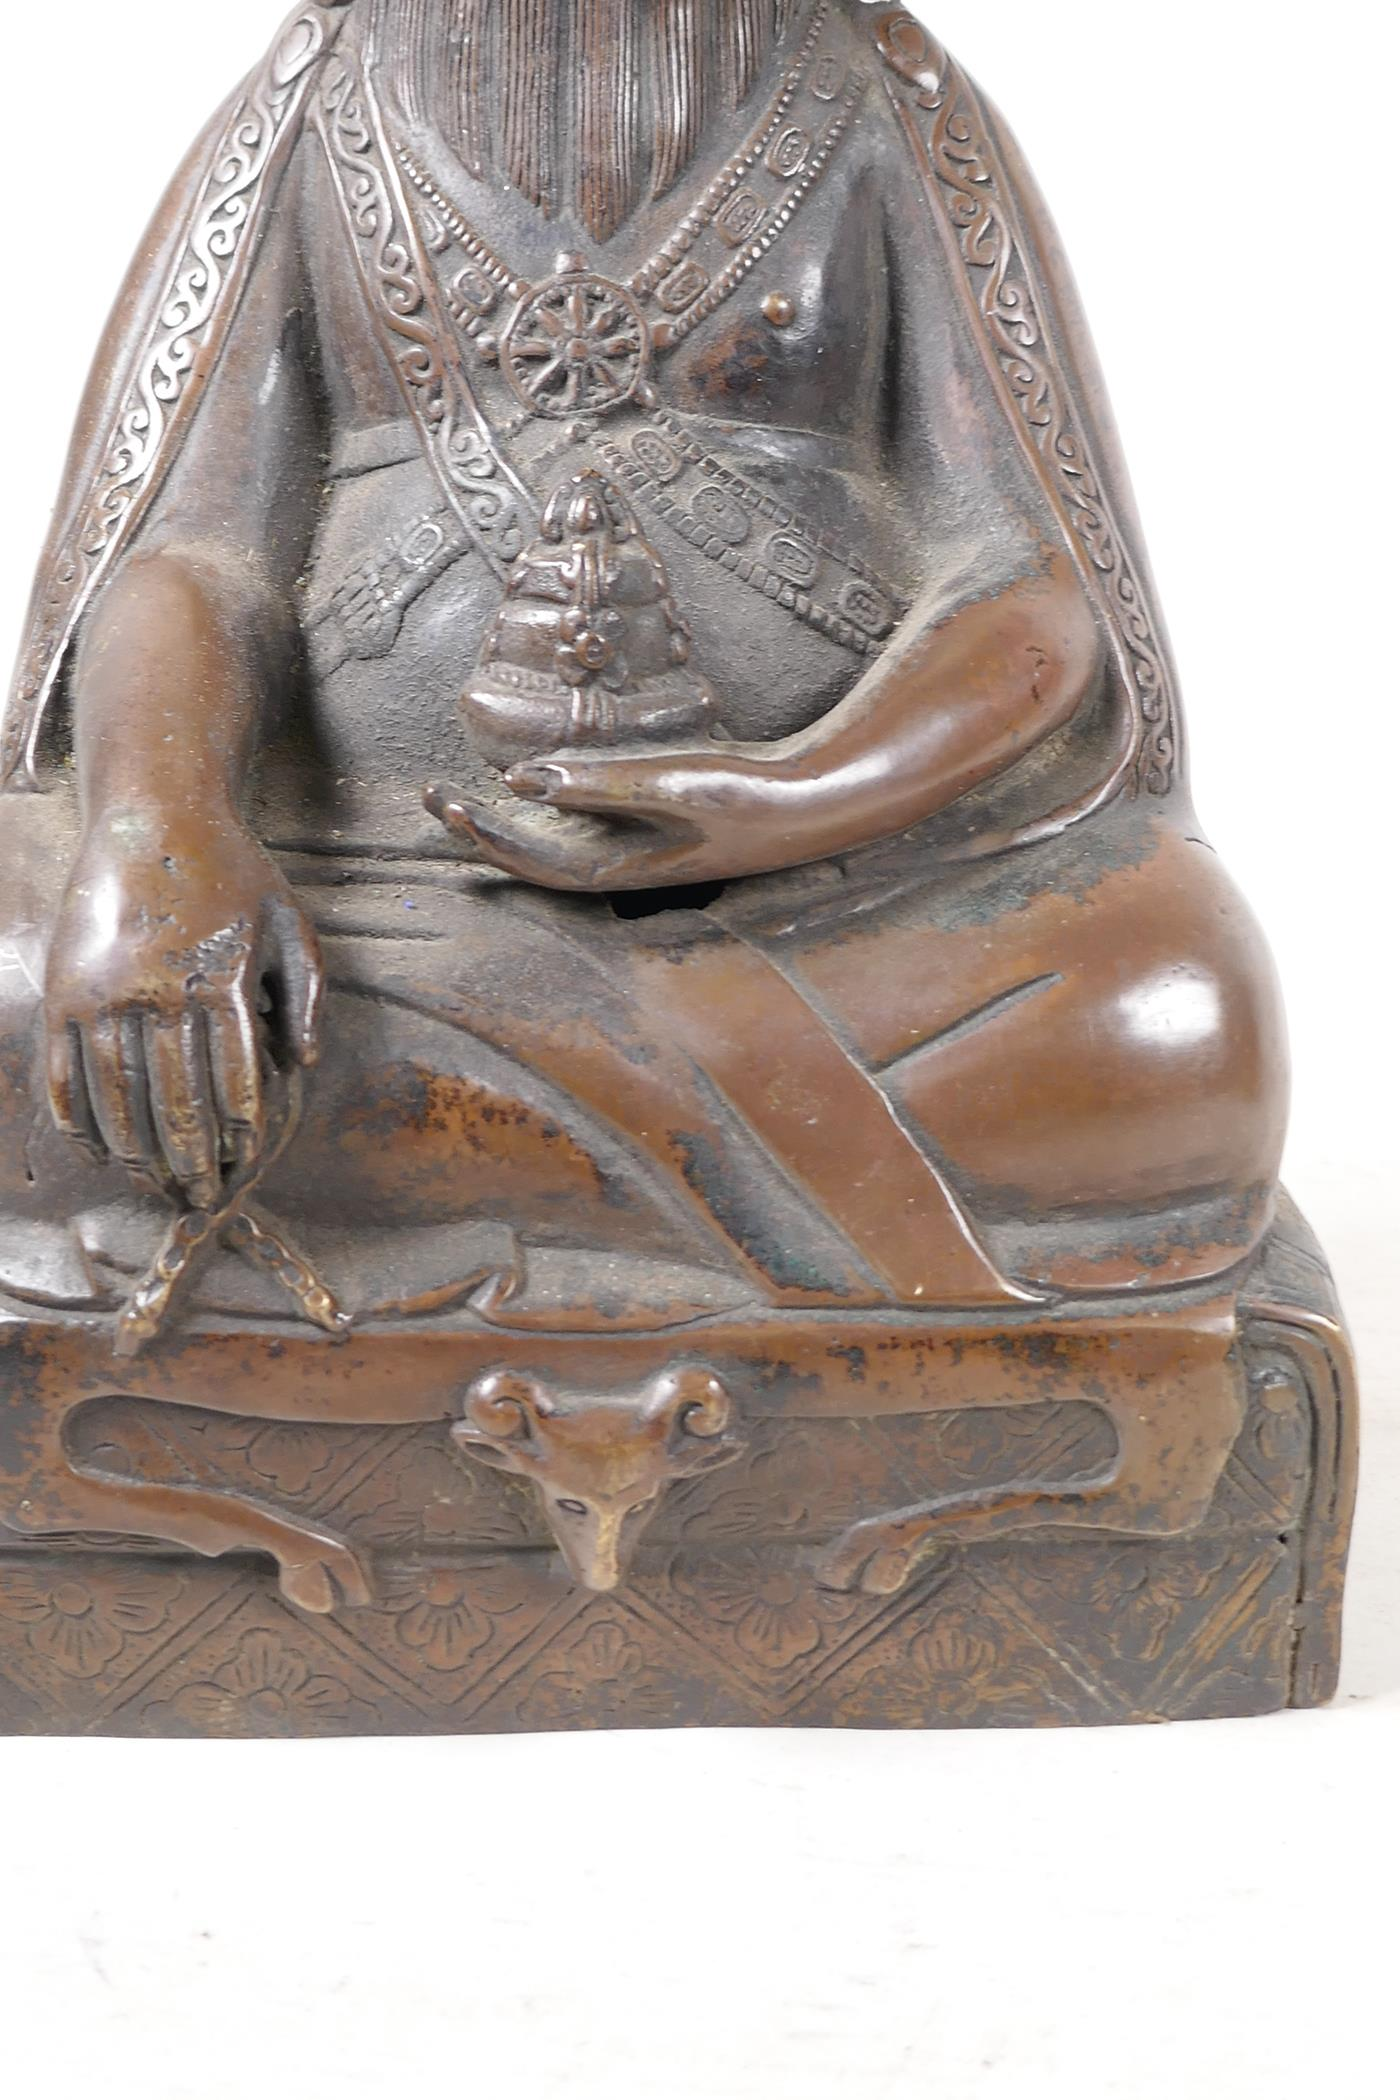 """A Sino Tibetan bronze figure of a deity seated in meditation, 11½"""" high - Image 4 of 4"""